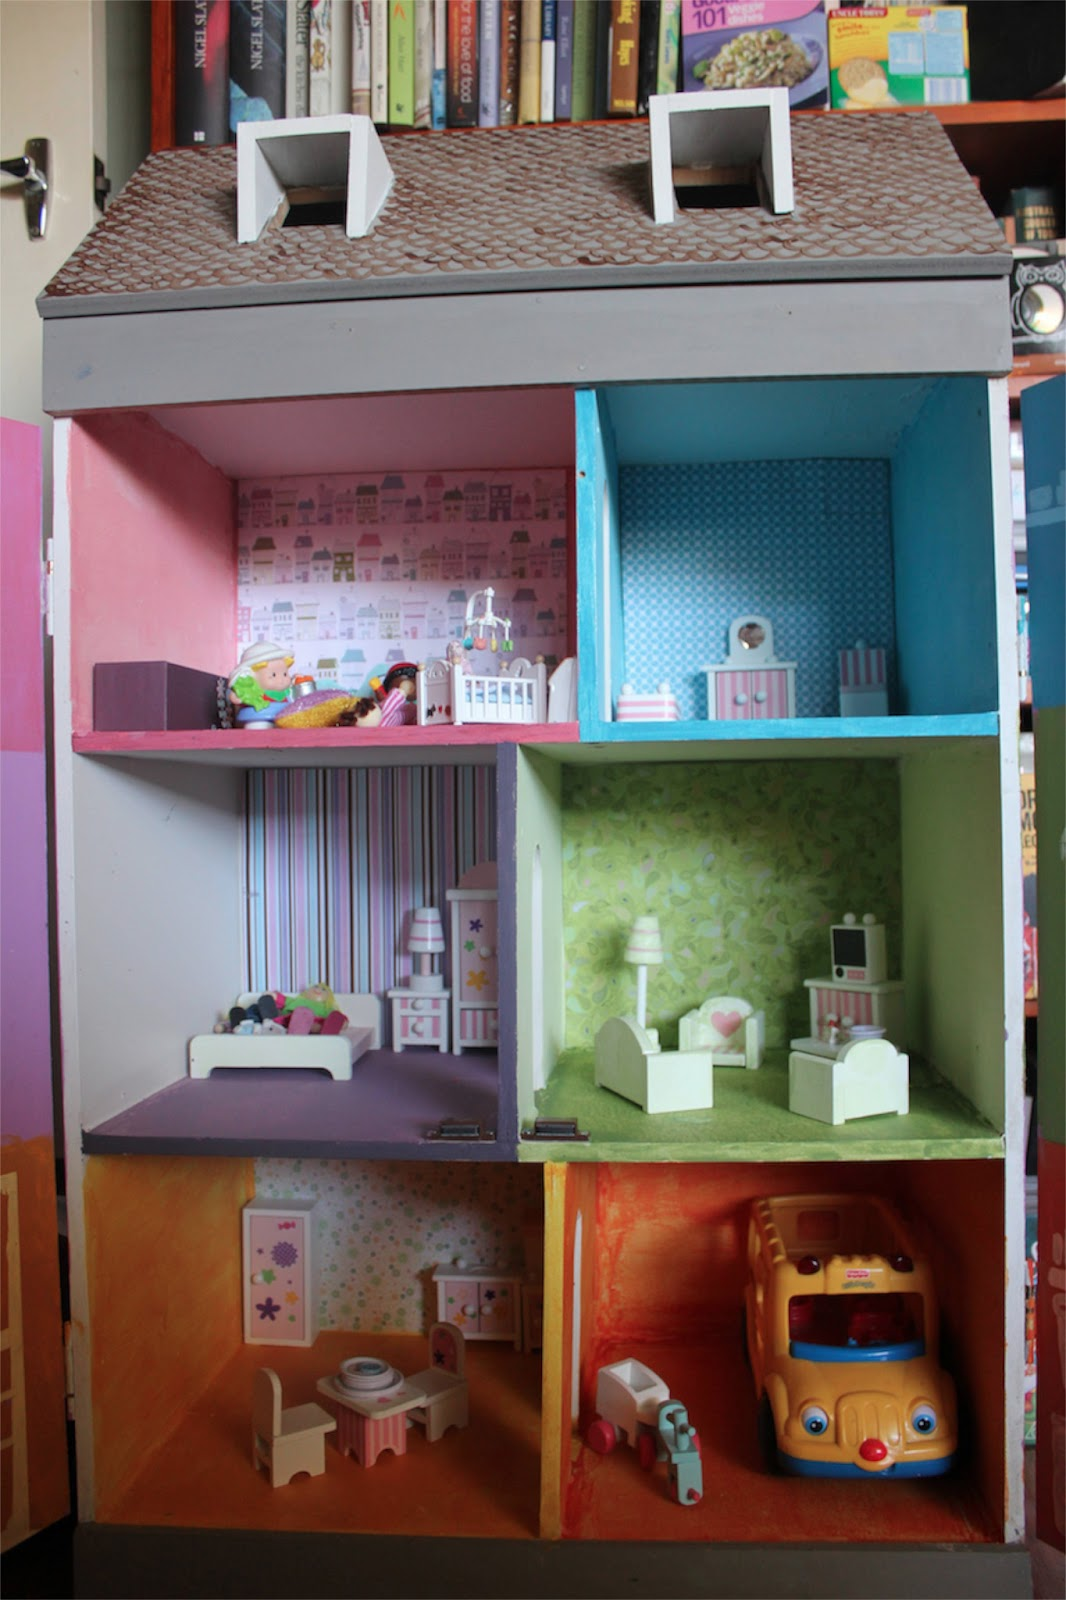 Scrapbook paper dollhouse wallpaper - At The Back Of Each Room Is Wallpaper Made Of Scrapbooking Paper Note The Rooms Are Quite Big And The Scrapbooking Paper Is A